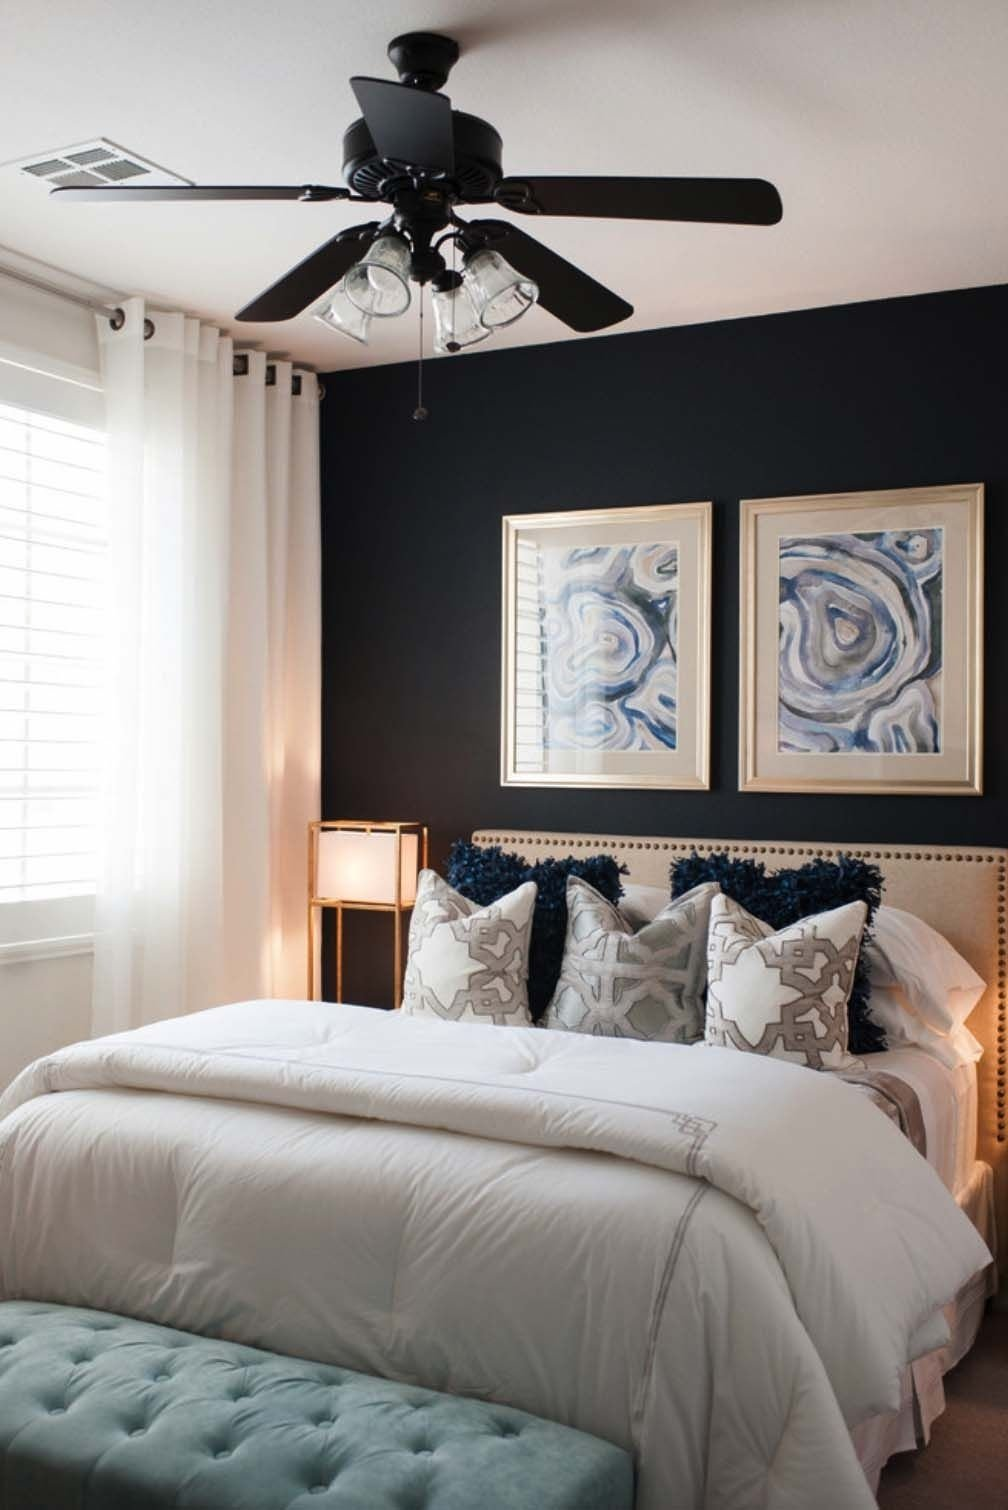 10 Most Recommended Small Master Bedroom Decorating Ideas 30 small yet amazingly cozy master bedroom retreats small master 2020